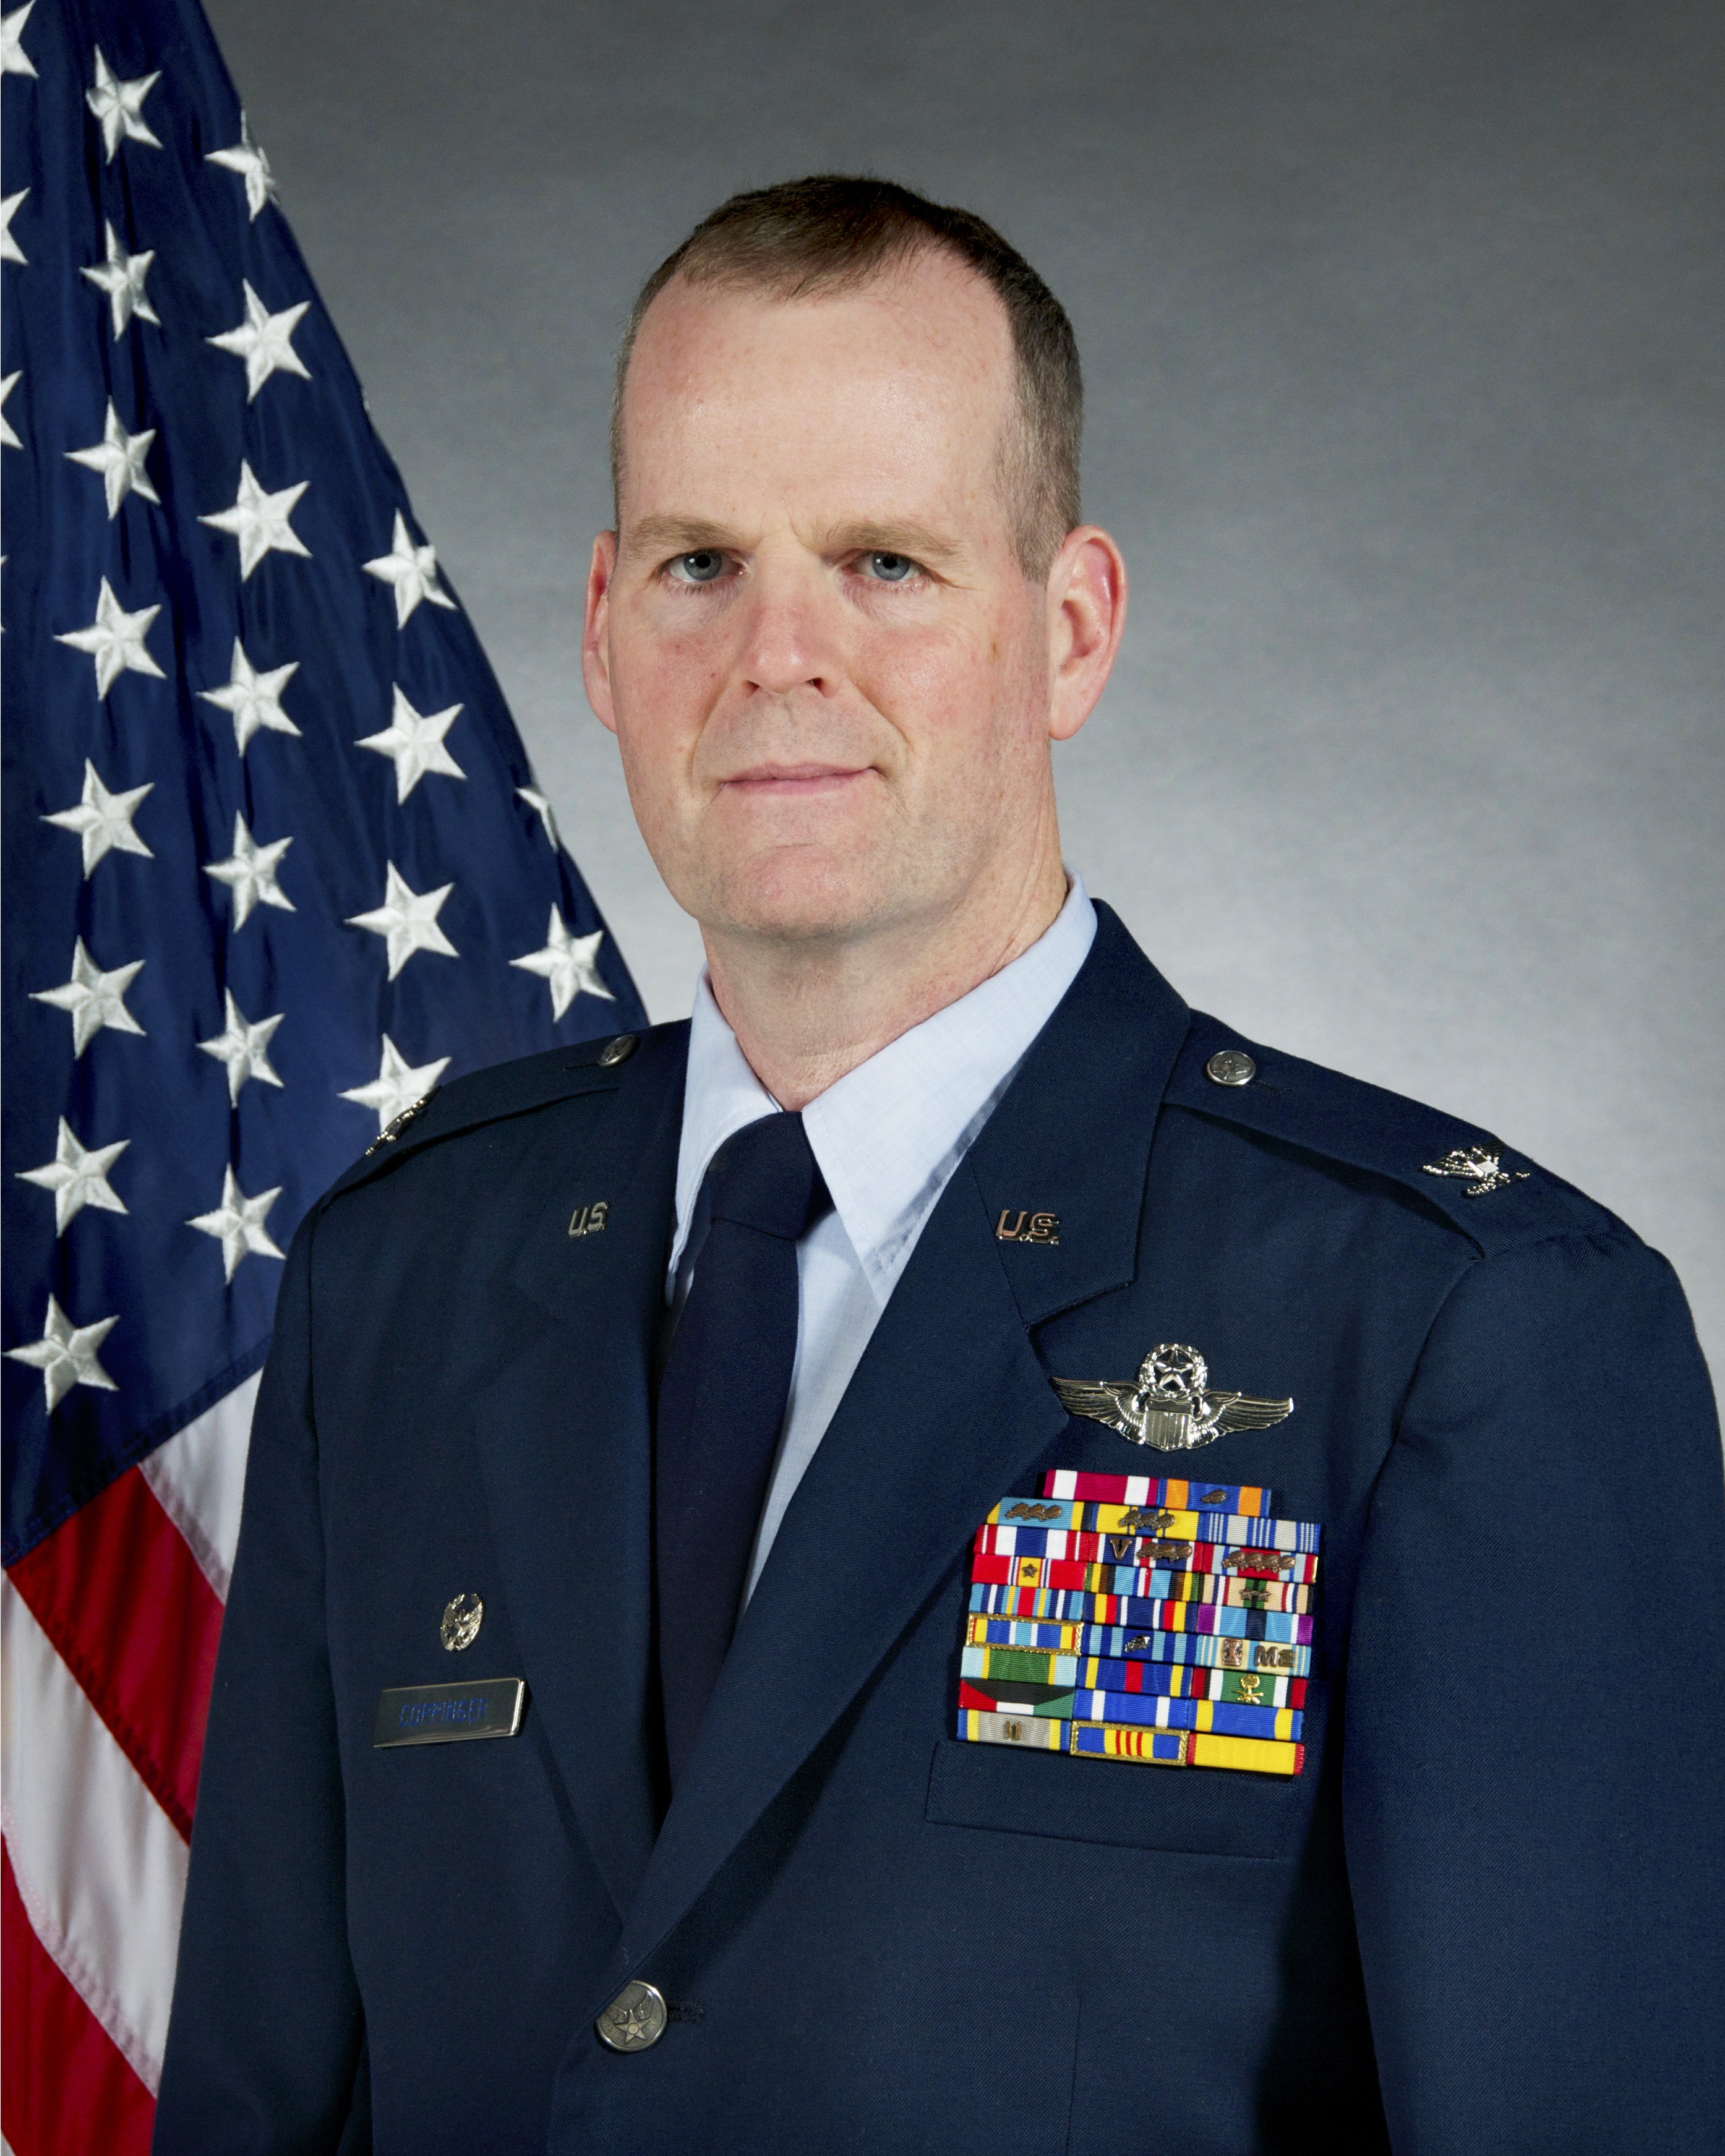 A photo of the Wing Vice Commander Col. Coppinger